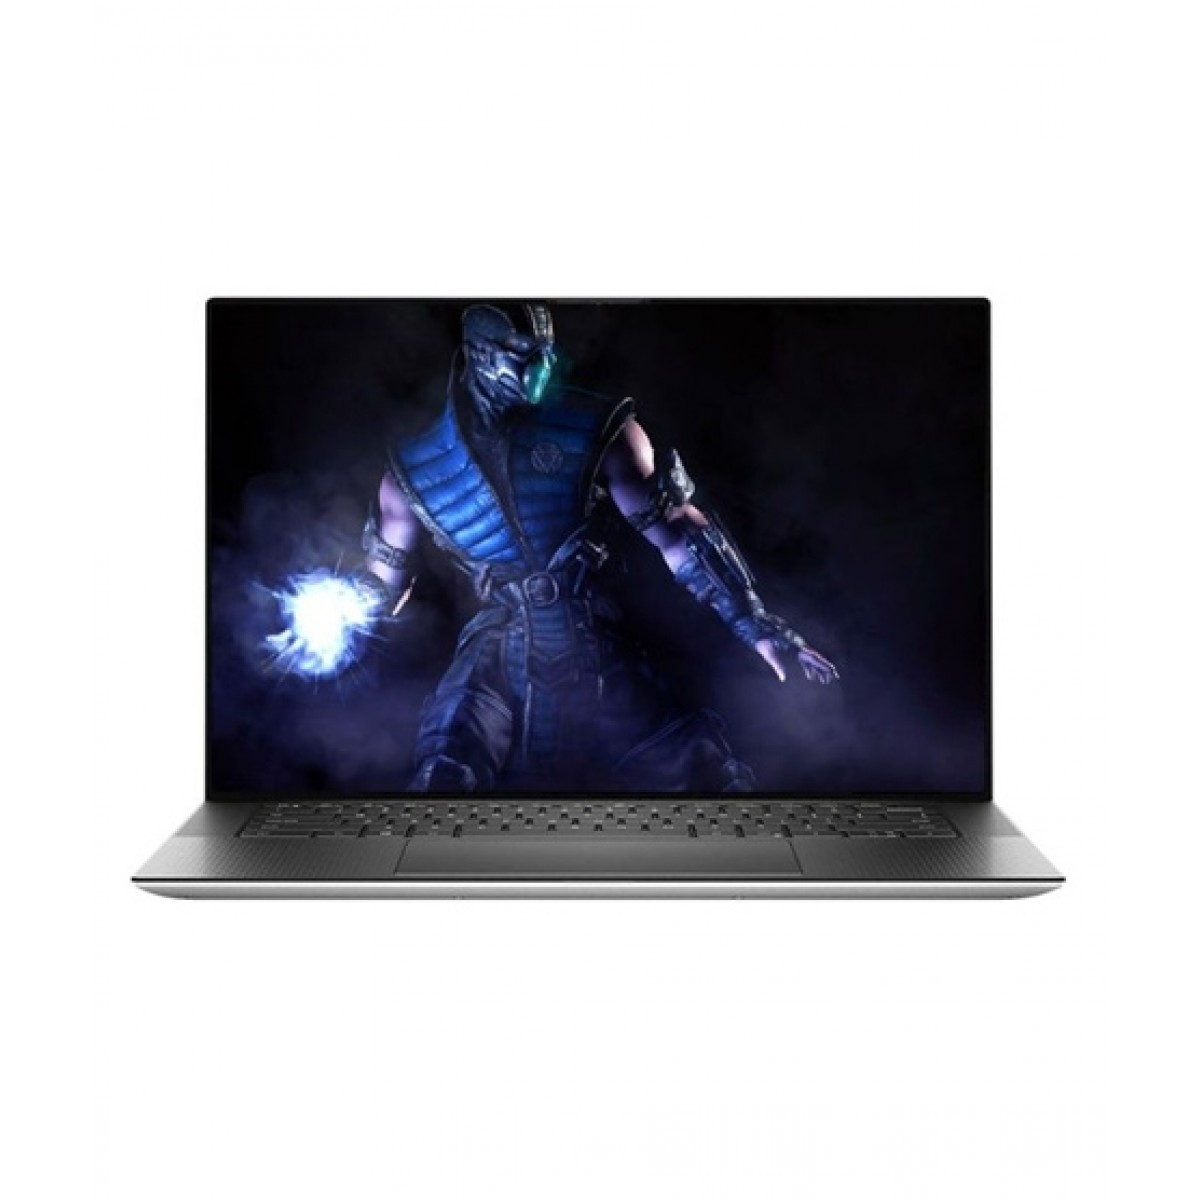 Dell XPS 15 Core i7 10th Gen 32GB 1TB SSD Geforce GTX 1650Ti Laptop (9500) - Without Warranty